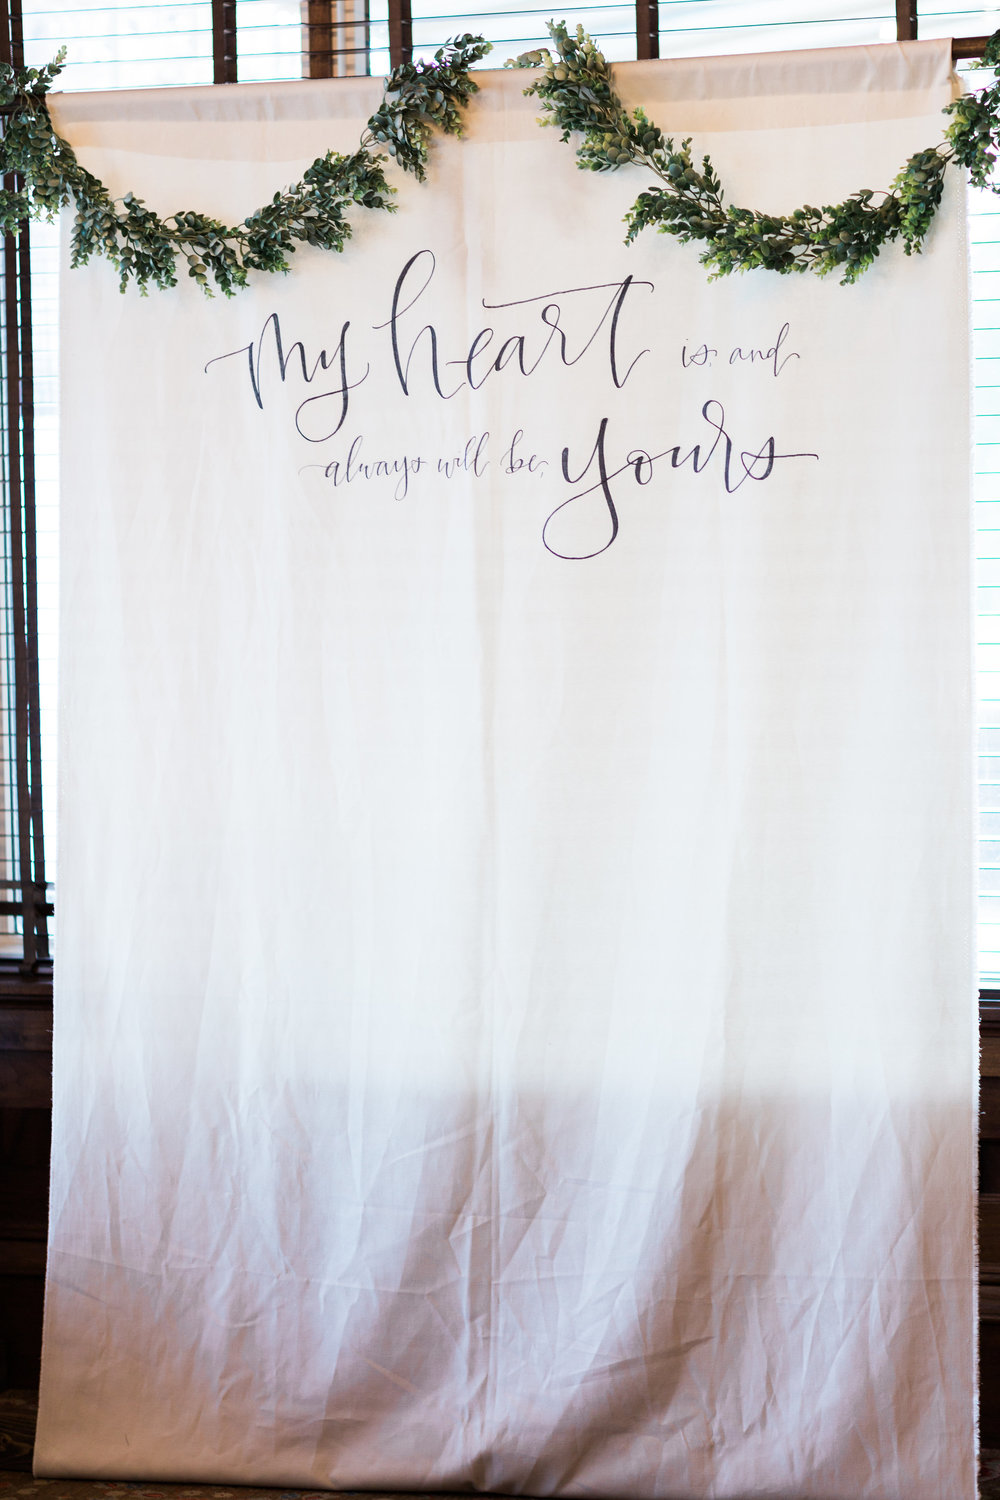 Backdrop - My Heart is and always will be yours - perfect for a photobooth or ceremony